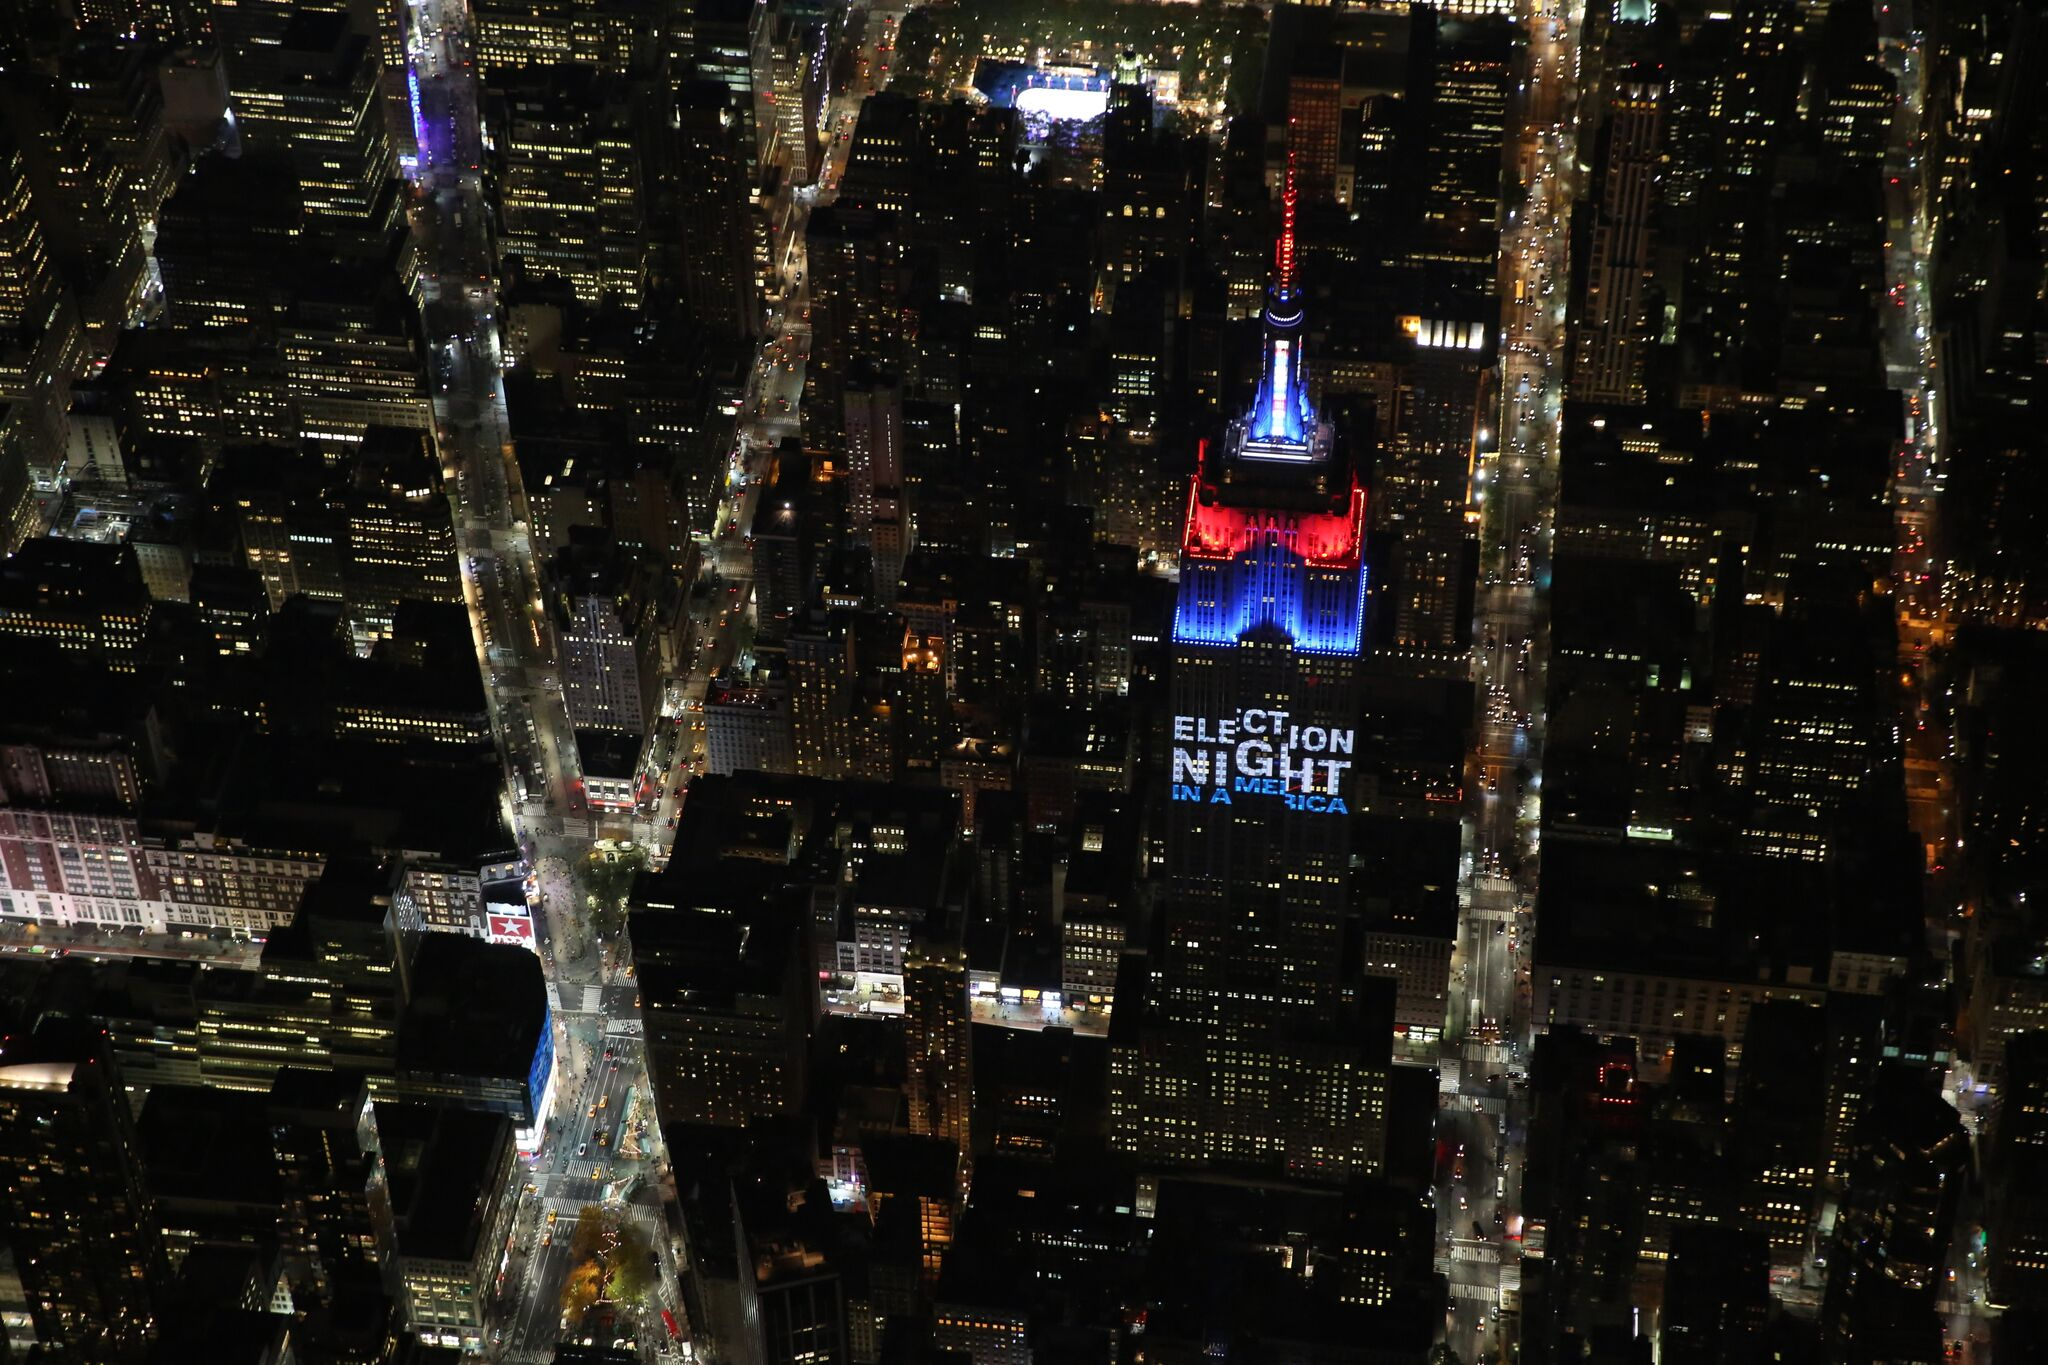 EMPIRE STATE BUILDING TEAMS WITH CNN, INSTAGRAM AND CA TECHNOLOGIES FOR AN UNPRECEDENTED ELECTION NIGHT ACTIVATION